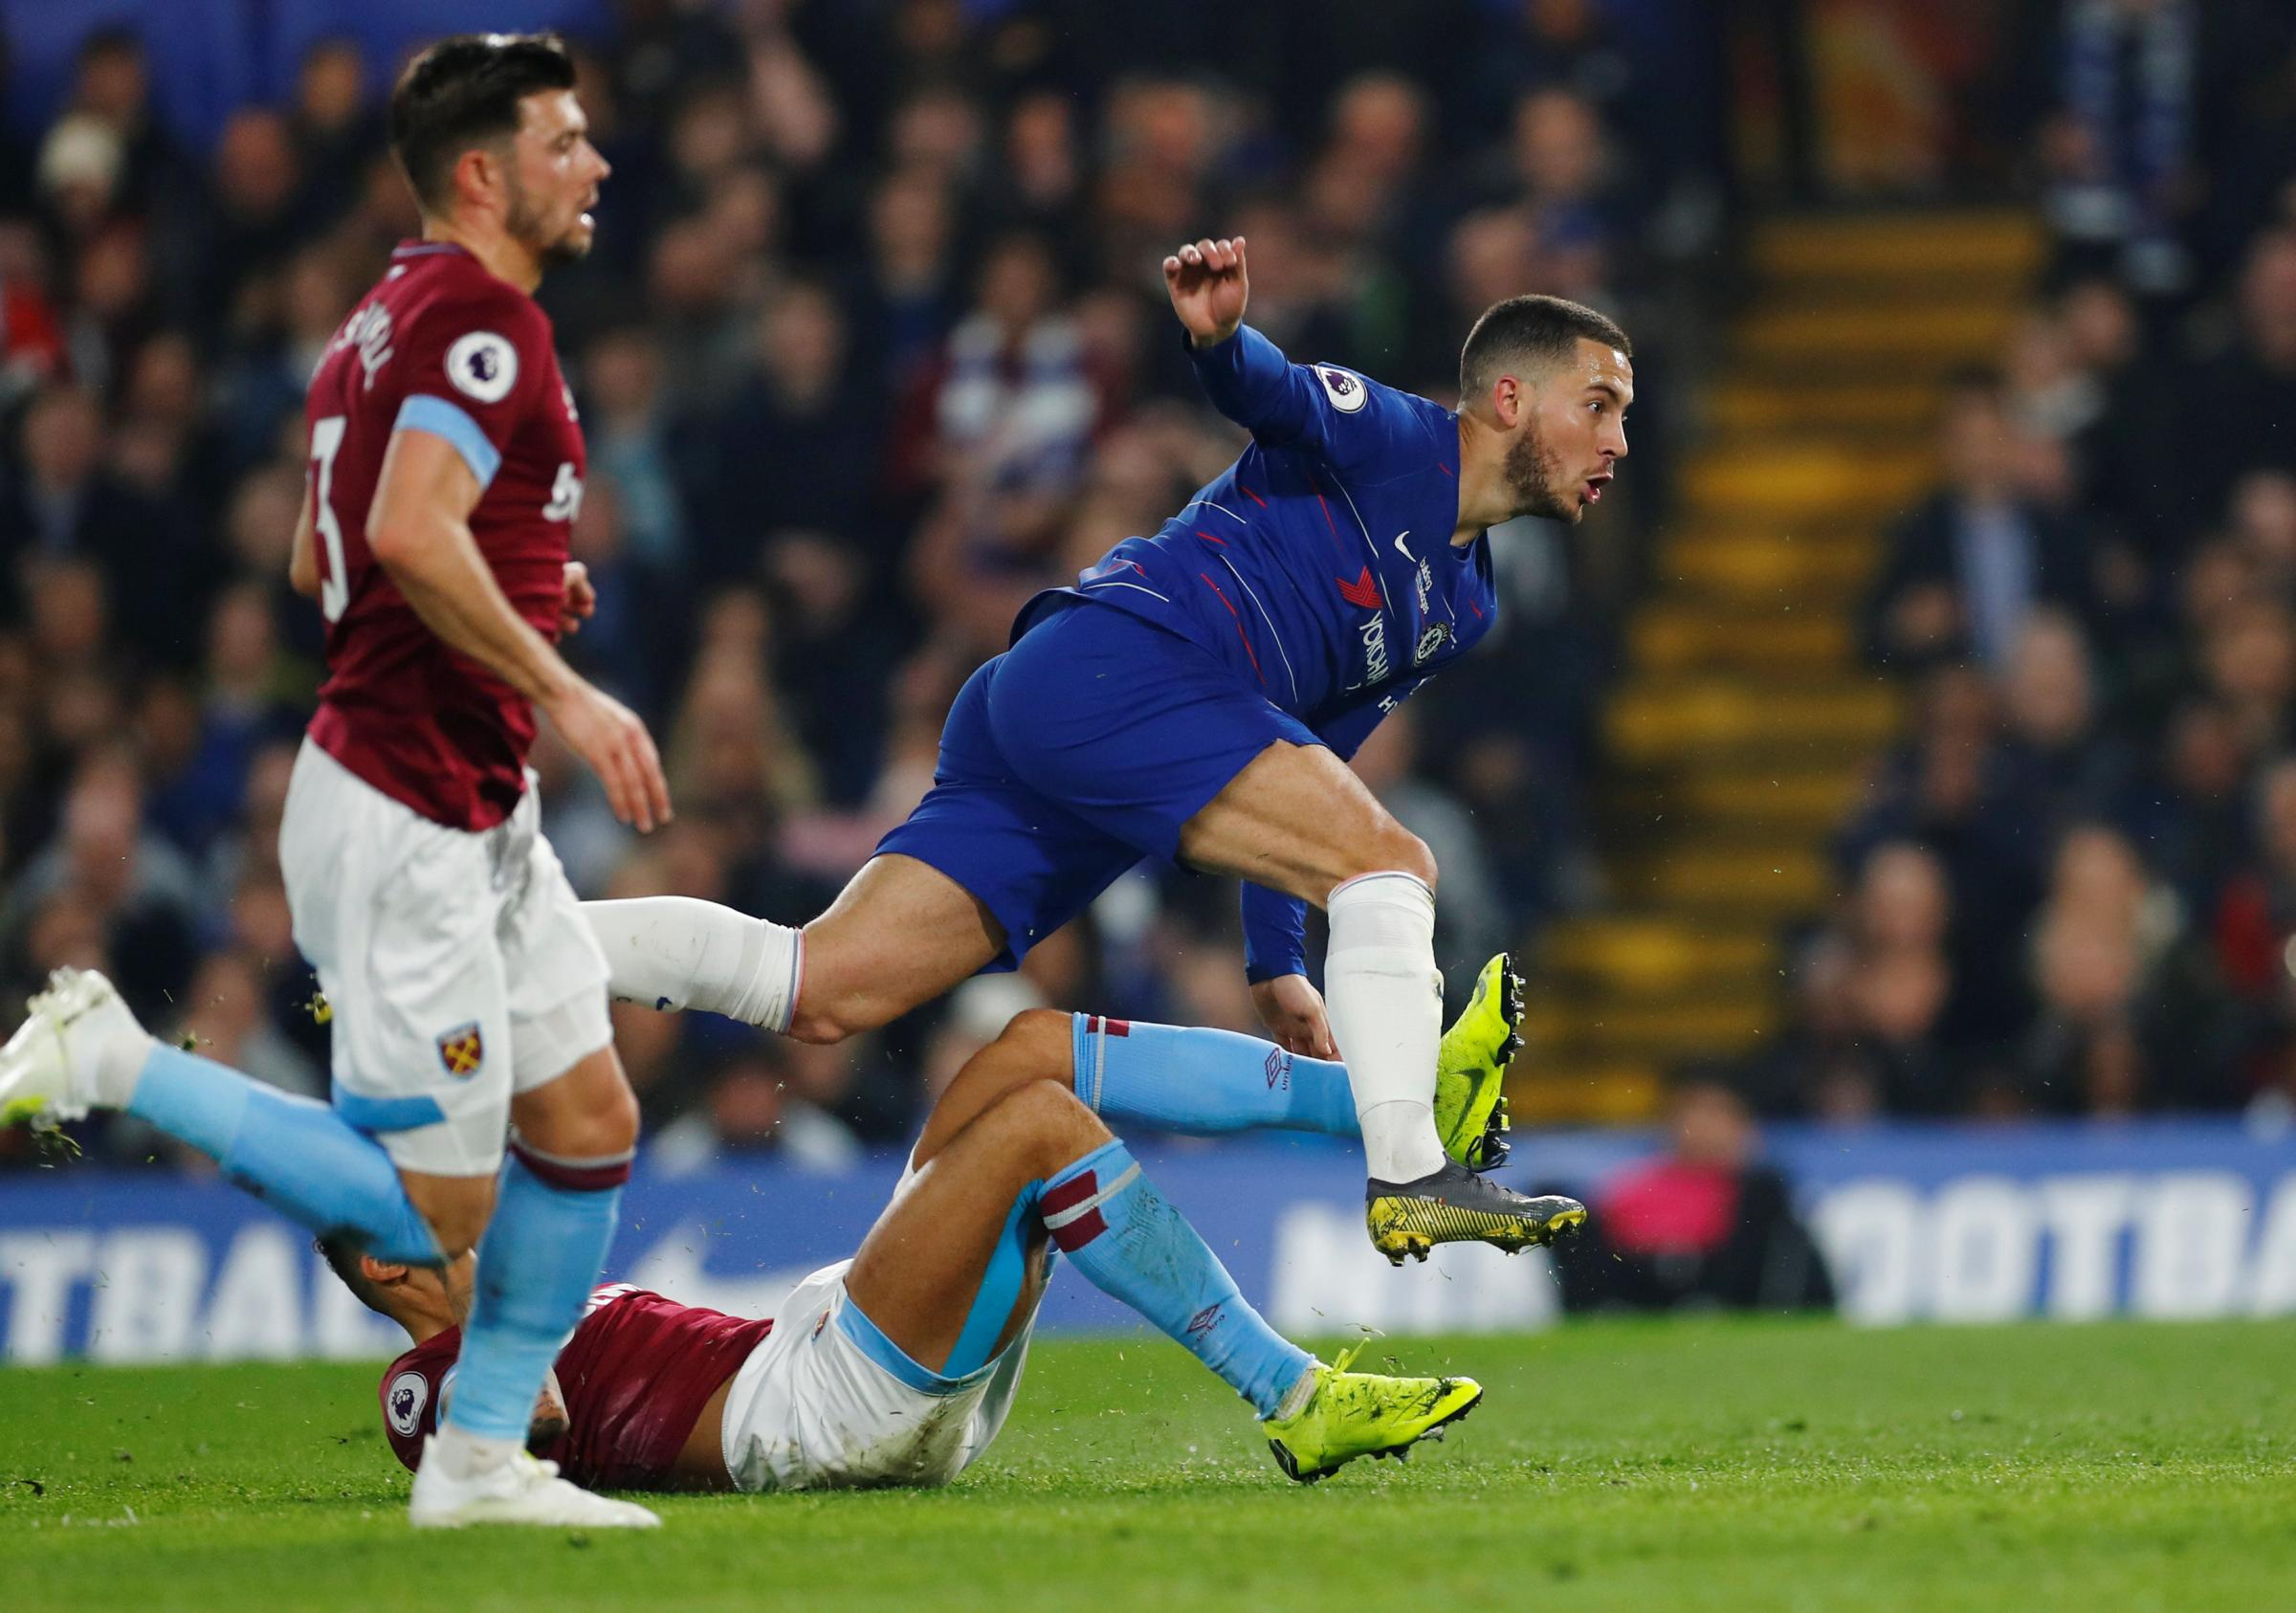 The Hammers are unable to stop Eden Hazard scoring his superb opening goal. Picture: Action Images